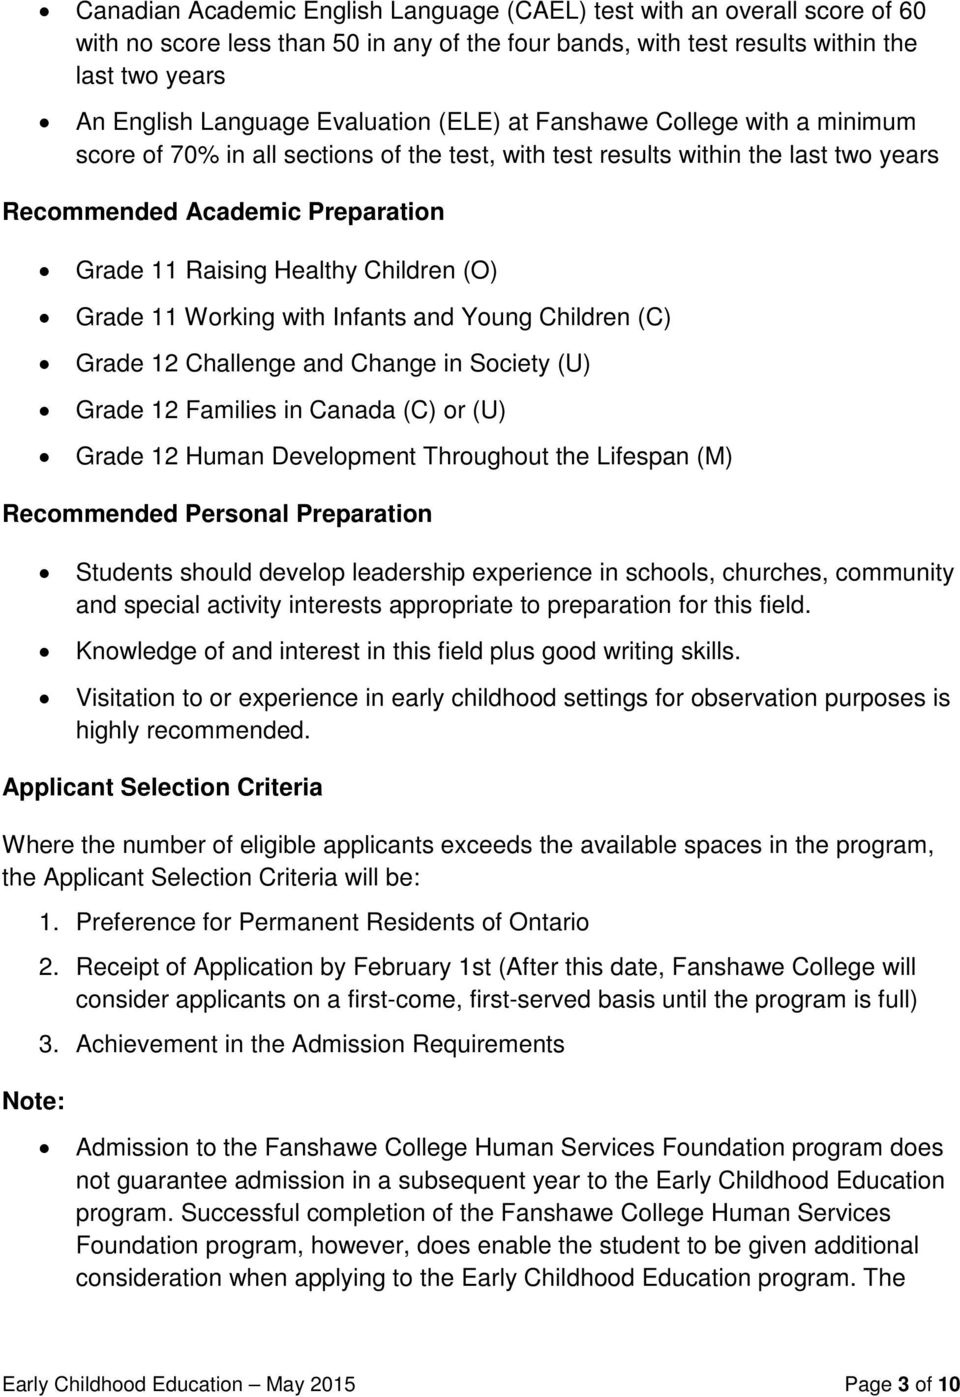 Children (O) Grade 11 Working with Infants and Young Children (C) Grade 12 Challenge and Change in Society (U) Grade 12 Families in Canada (C) or (U) Grade 12 Human Development Throughout the